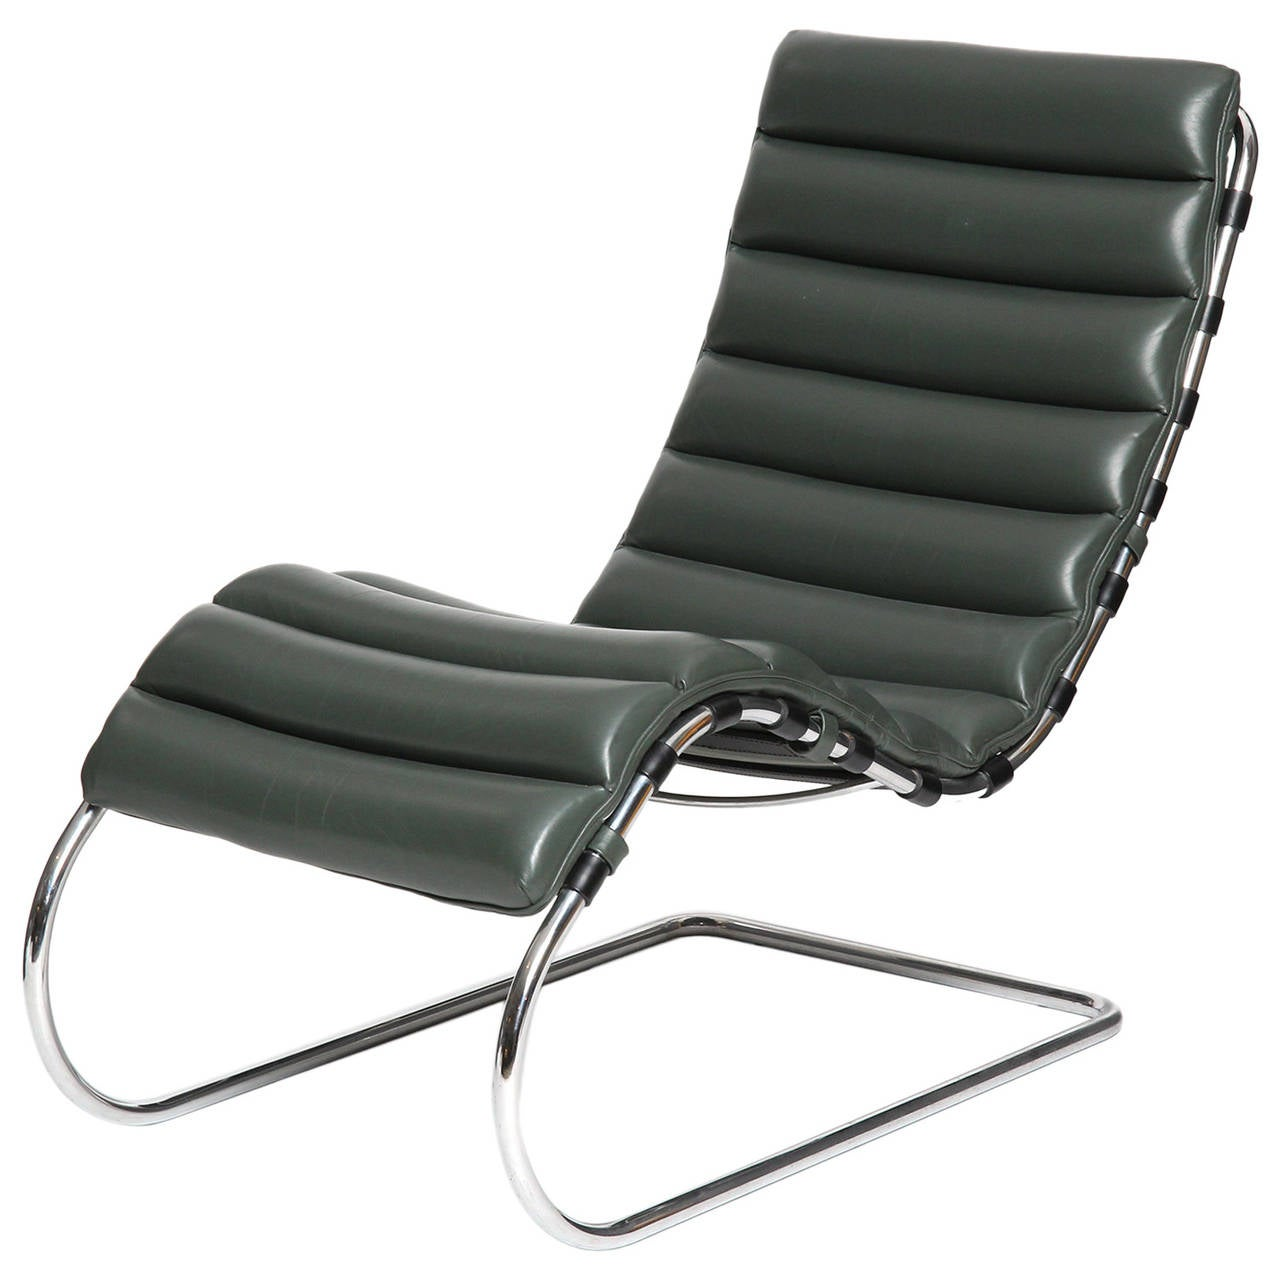 Lounge Chair By Ludwig Mies Van Der Rohe At 1stdibs